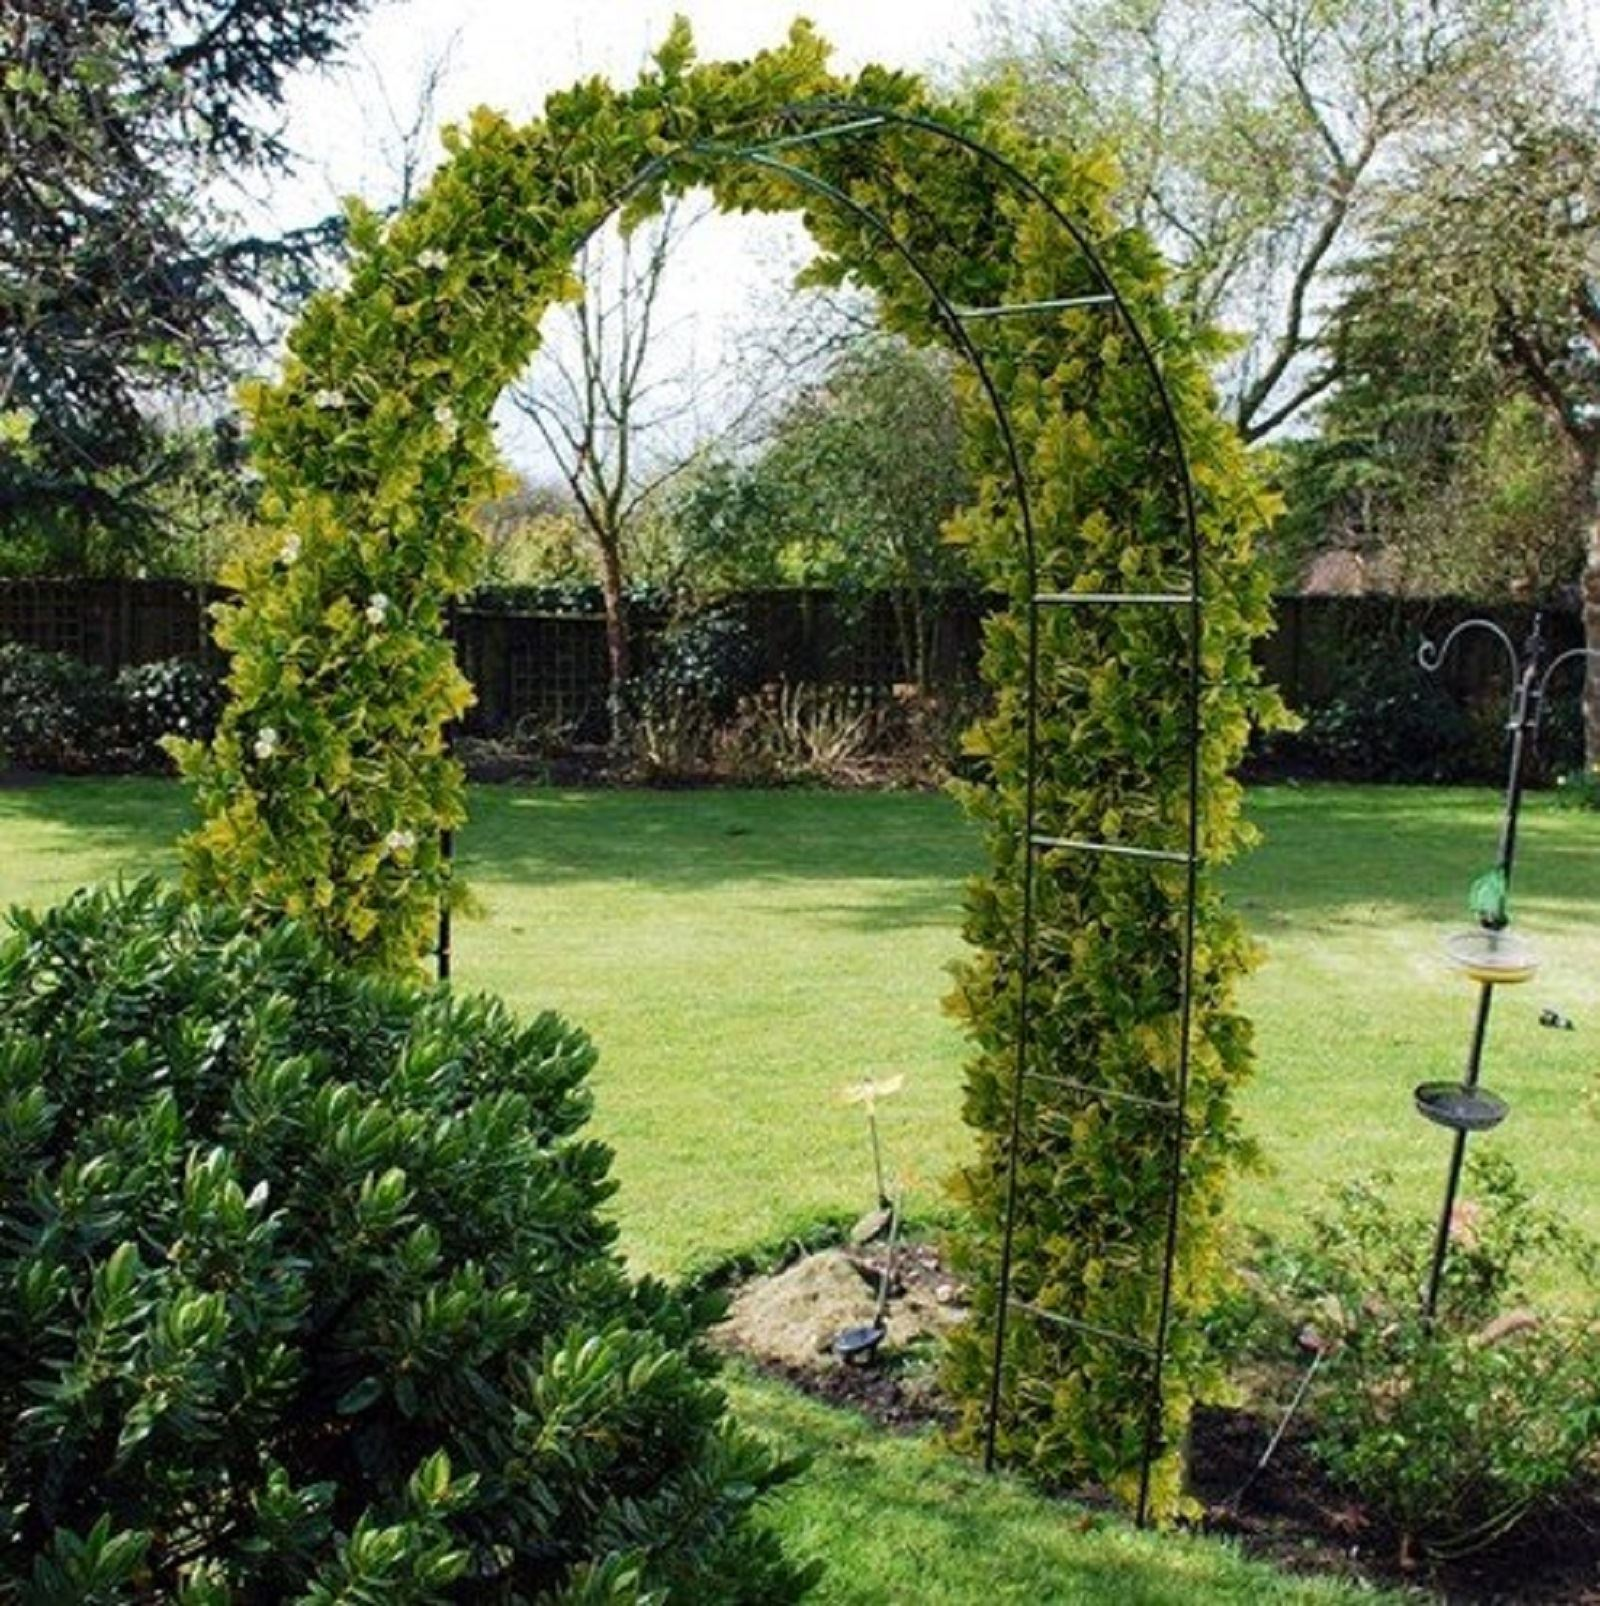 Self assembly garden metal arch for climbing plants - Garden arch climbing plants ...